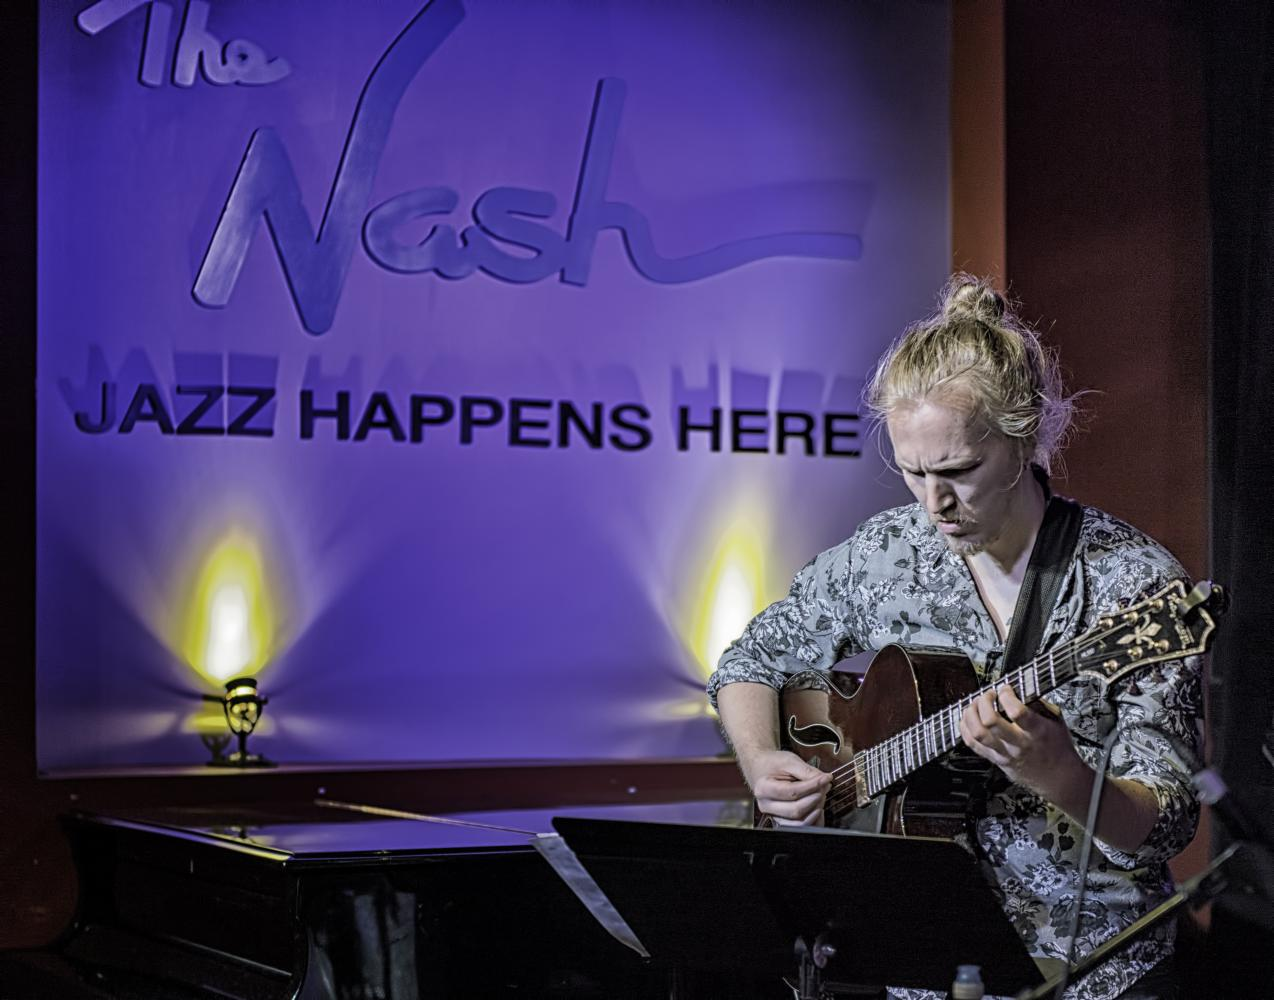 John Meier with Mary Petrich at the Nash in Phoenix